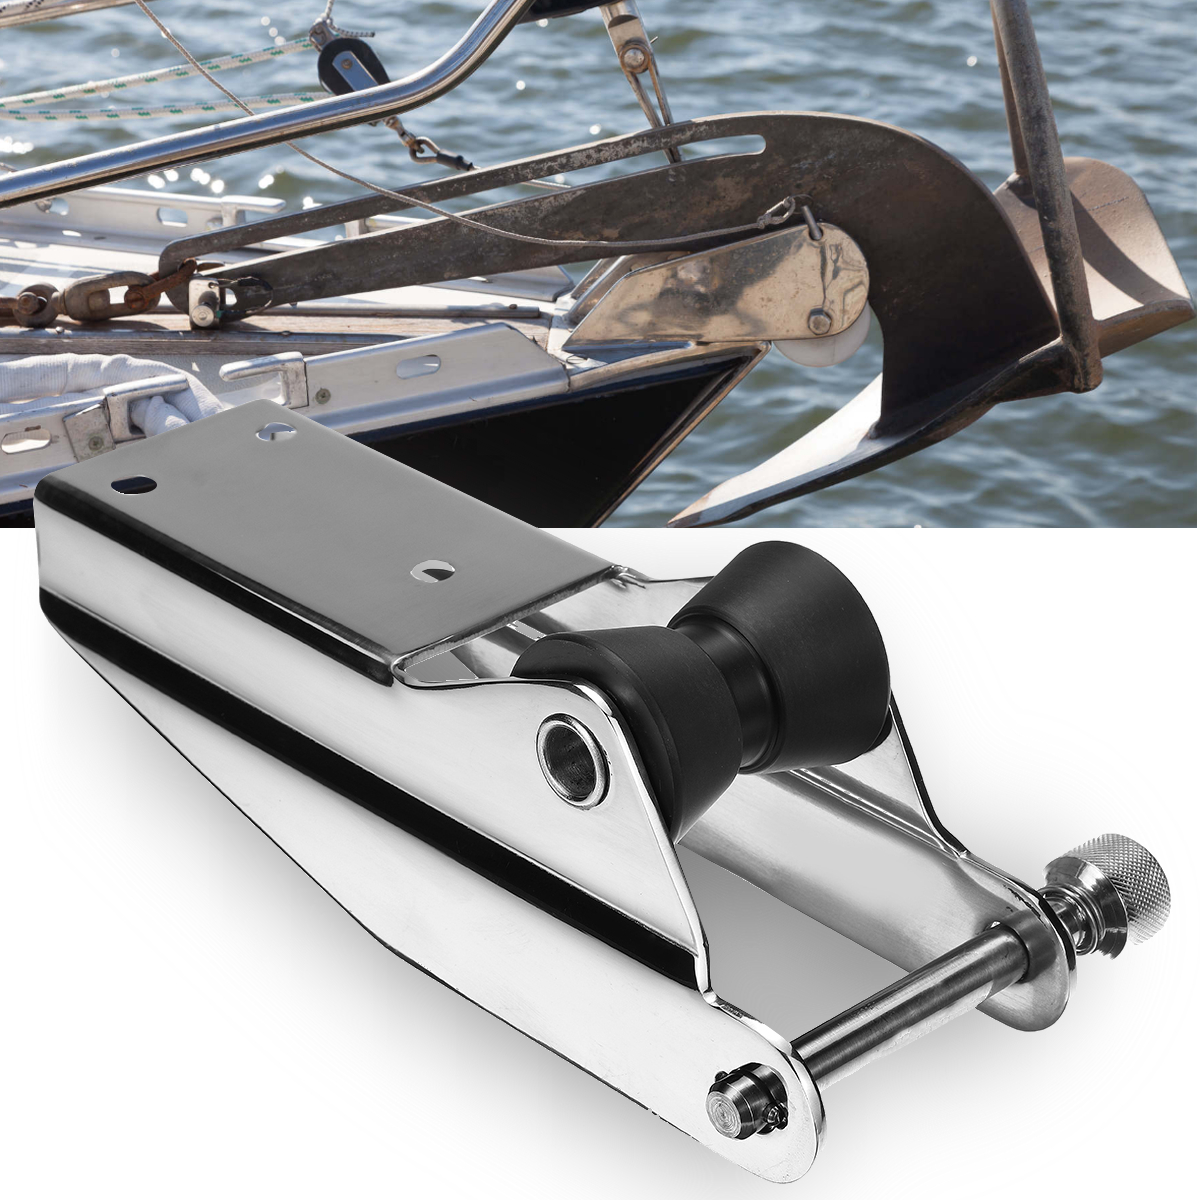 316 Stainless Steel Heavy Duty Bow Anchor Roller For Fixed Marine Boat Docking Black Nylon Roller Spring Loaded Pin Prevent